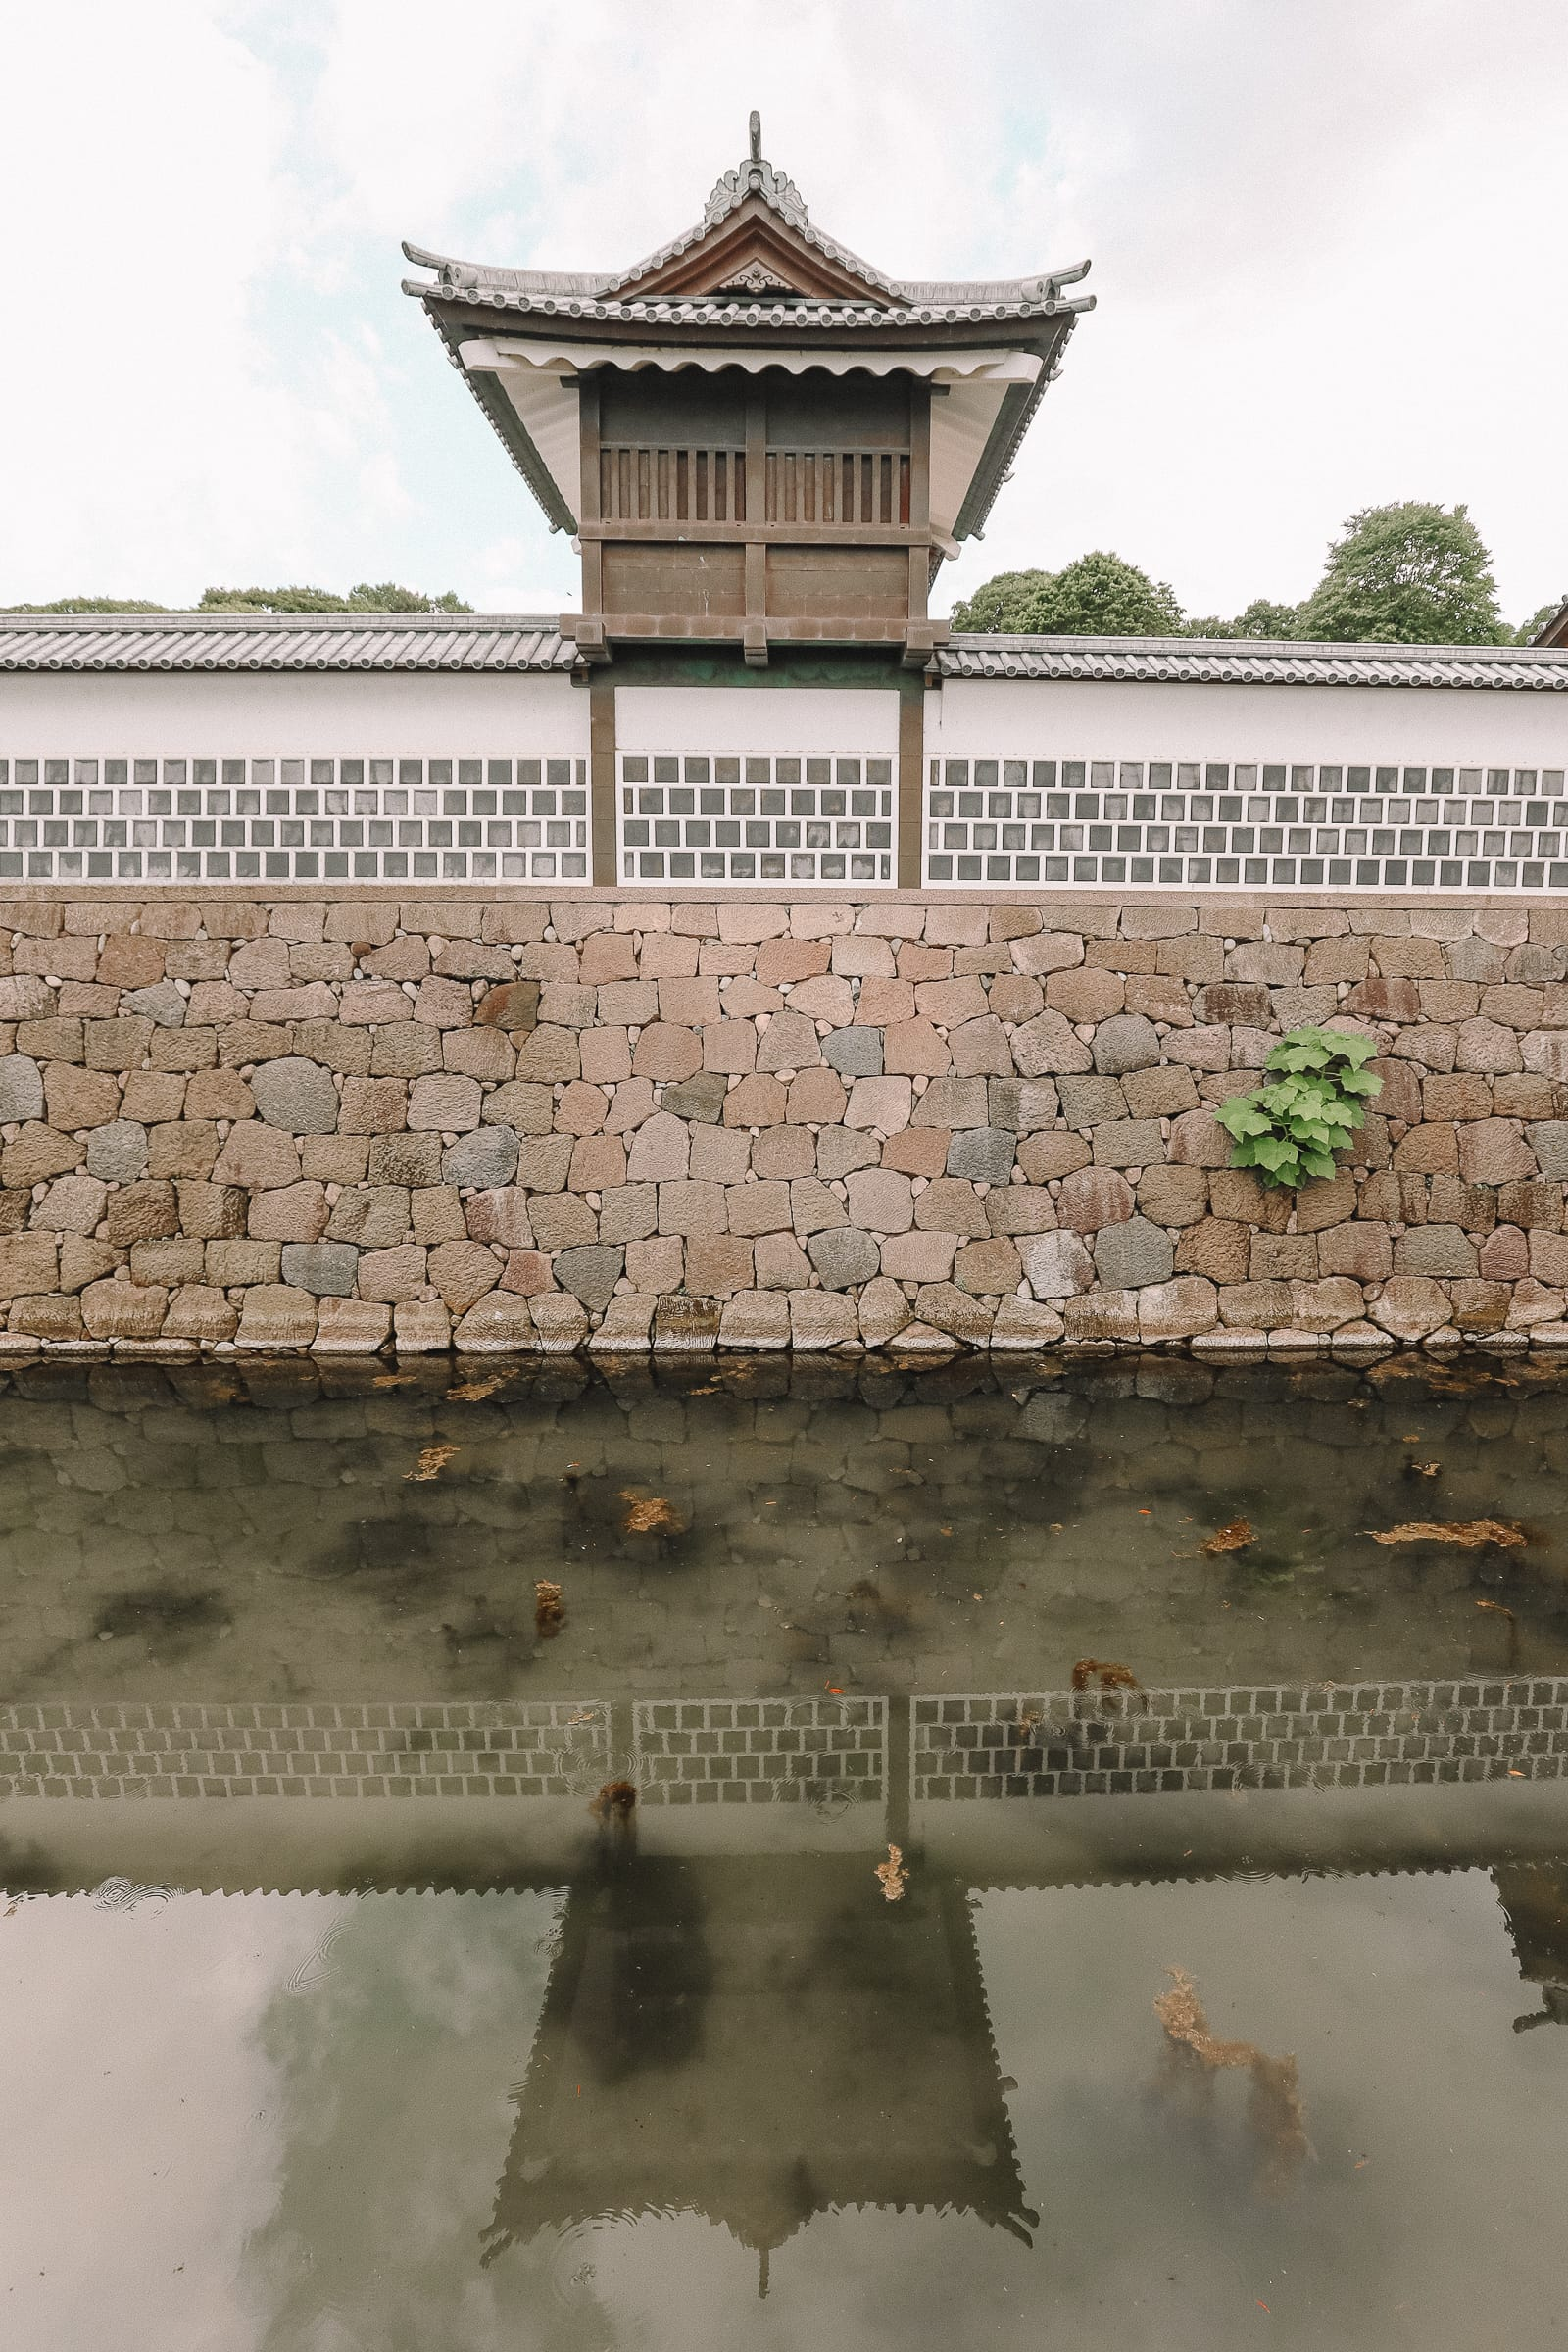 Exploring The Historic City Of Kanazawa - Japan (22)